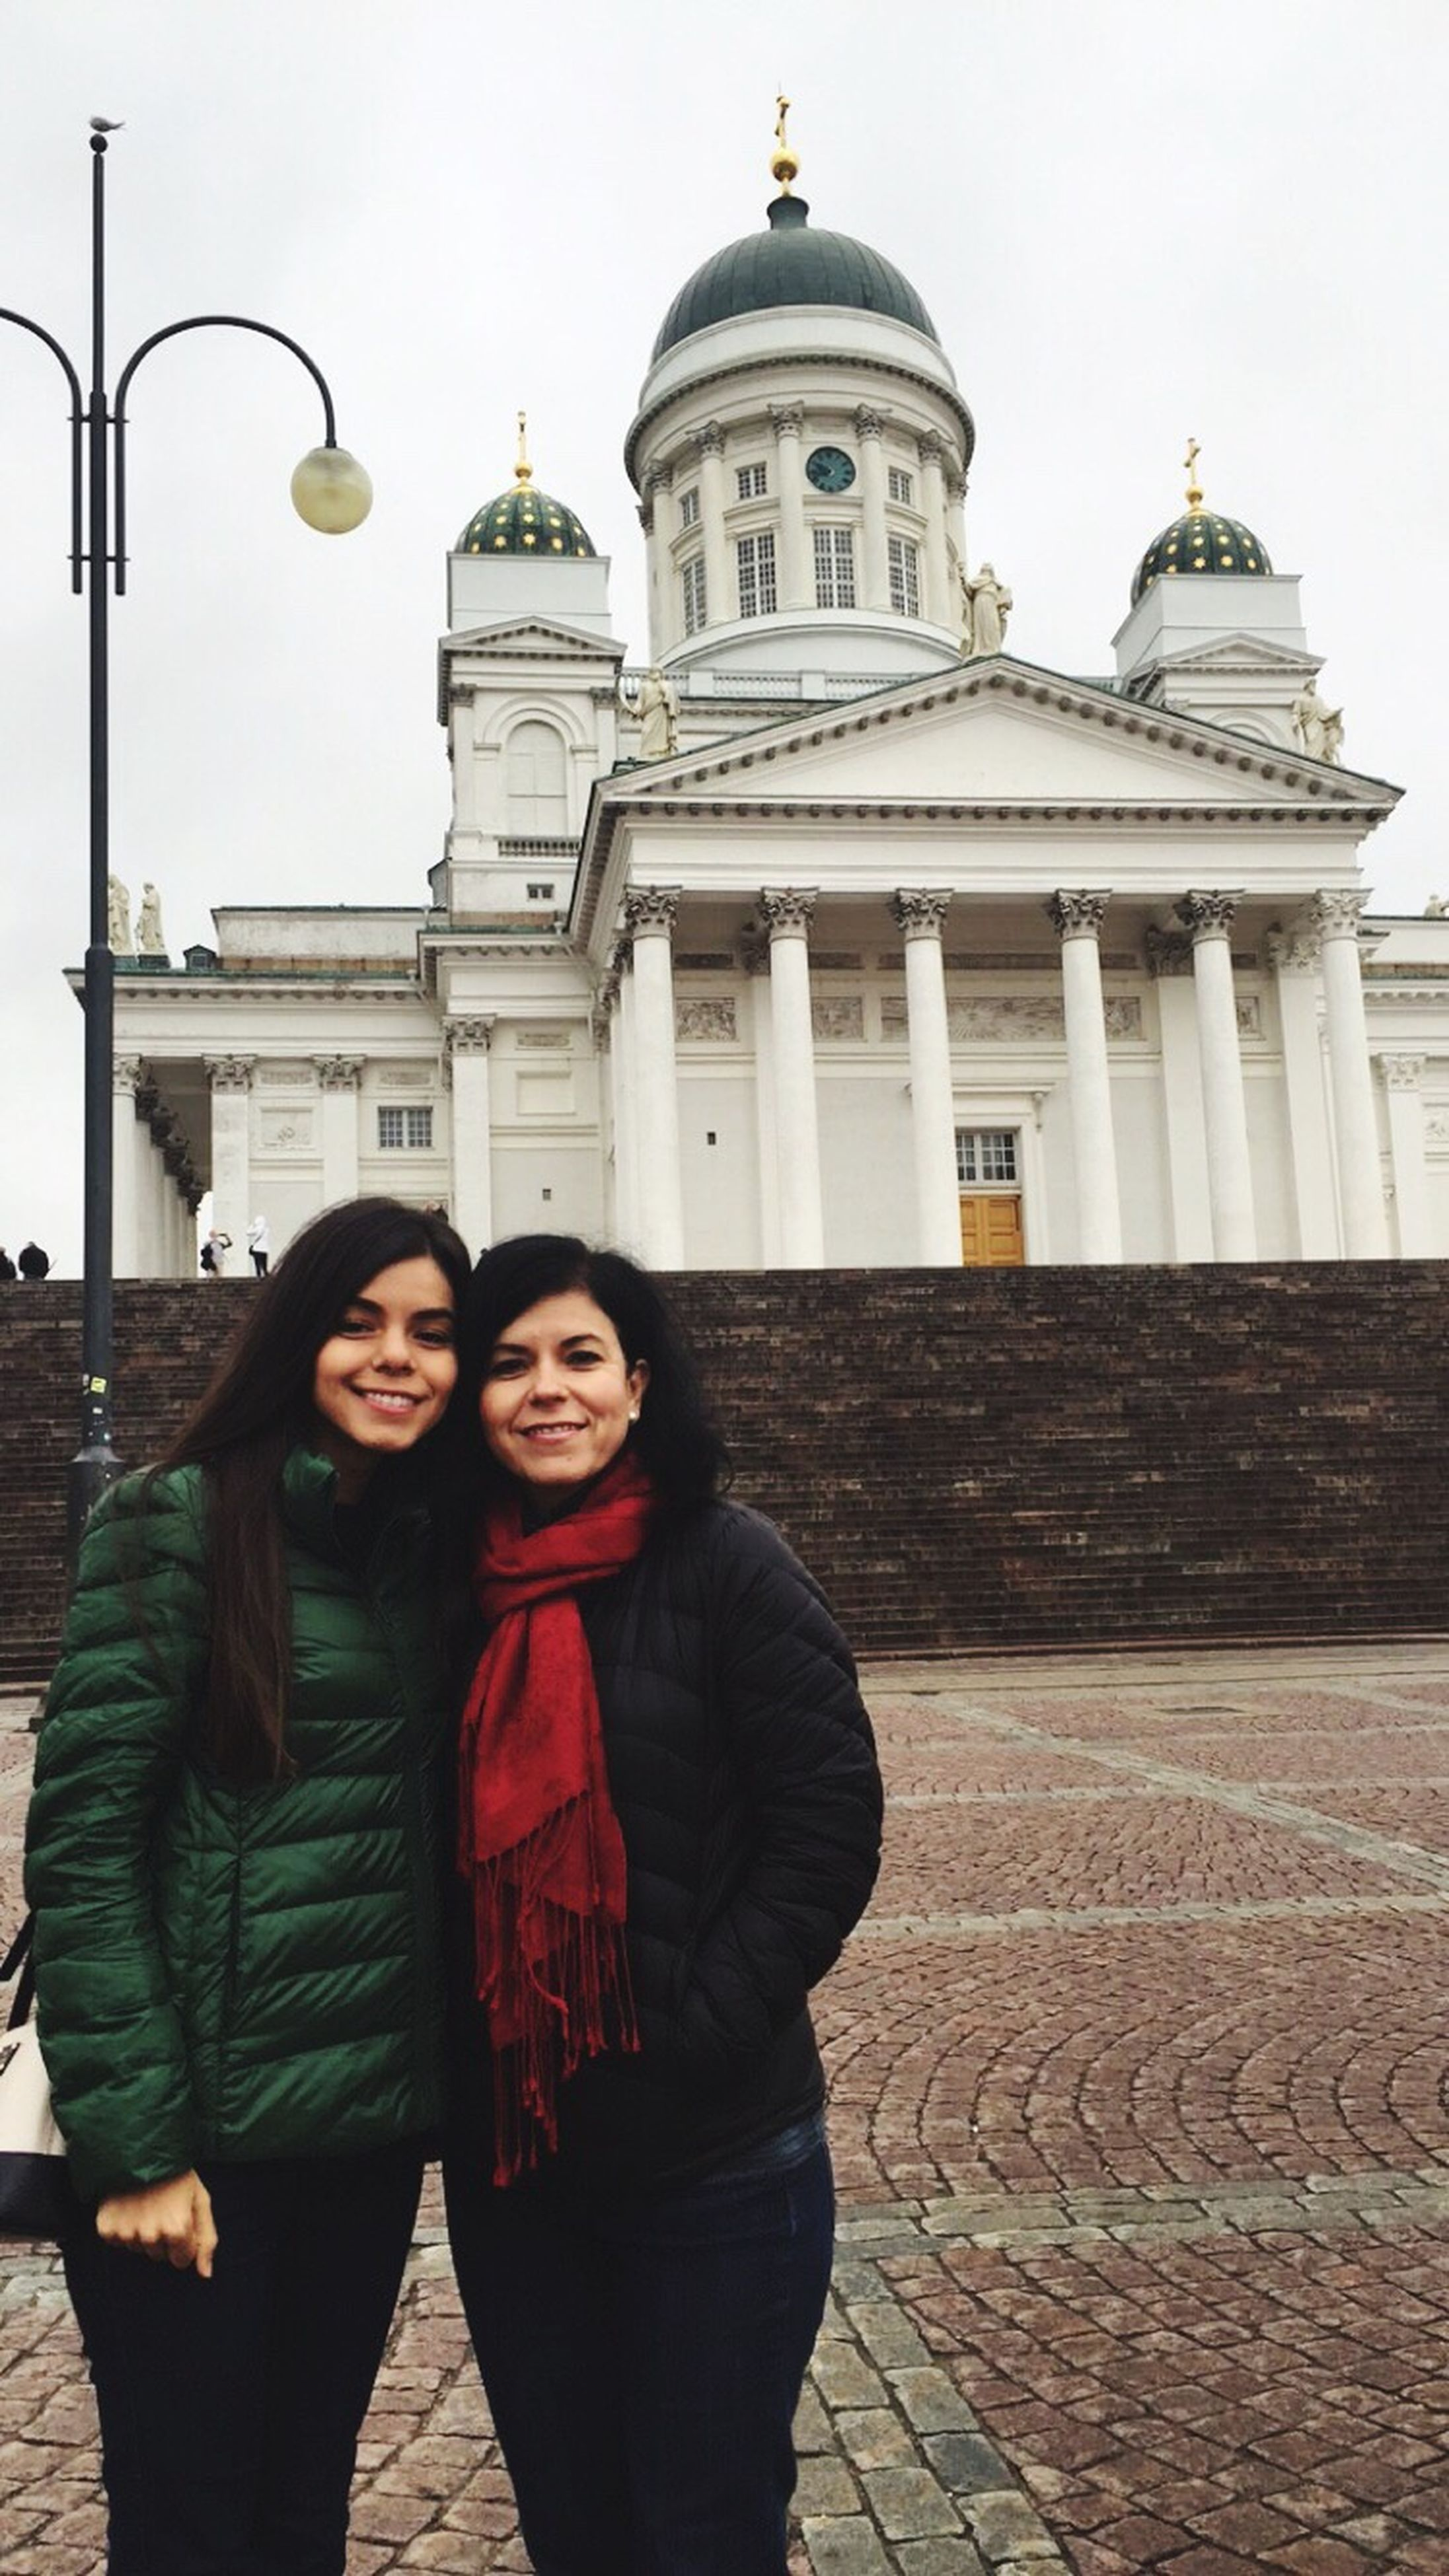 two people, togetherness, young women, dome, young adult, architecture, city, portrait, smiling, adults only, travel destinations, black hair, looking at camera, built structure, standing, building exterior, women, adult, lifestyles, happiness, real people, outdoors, vacations, cheerful, friendship, people, only women, beautiful woman, day